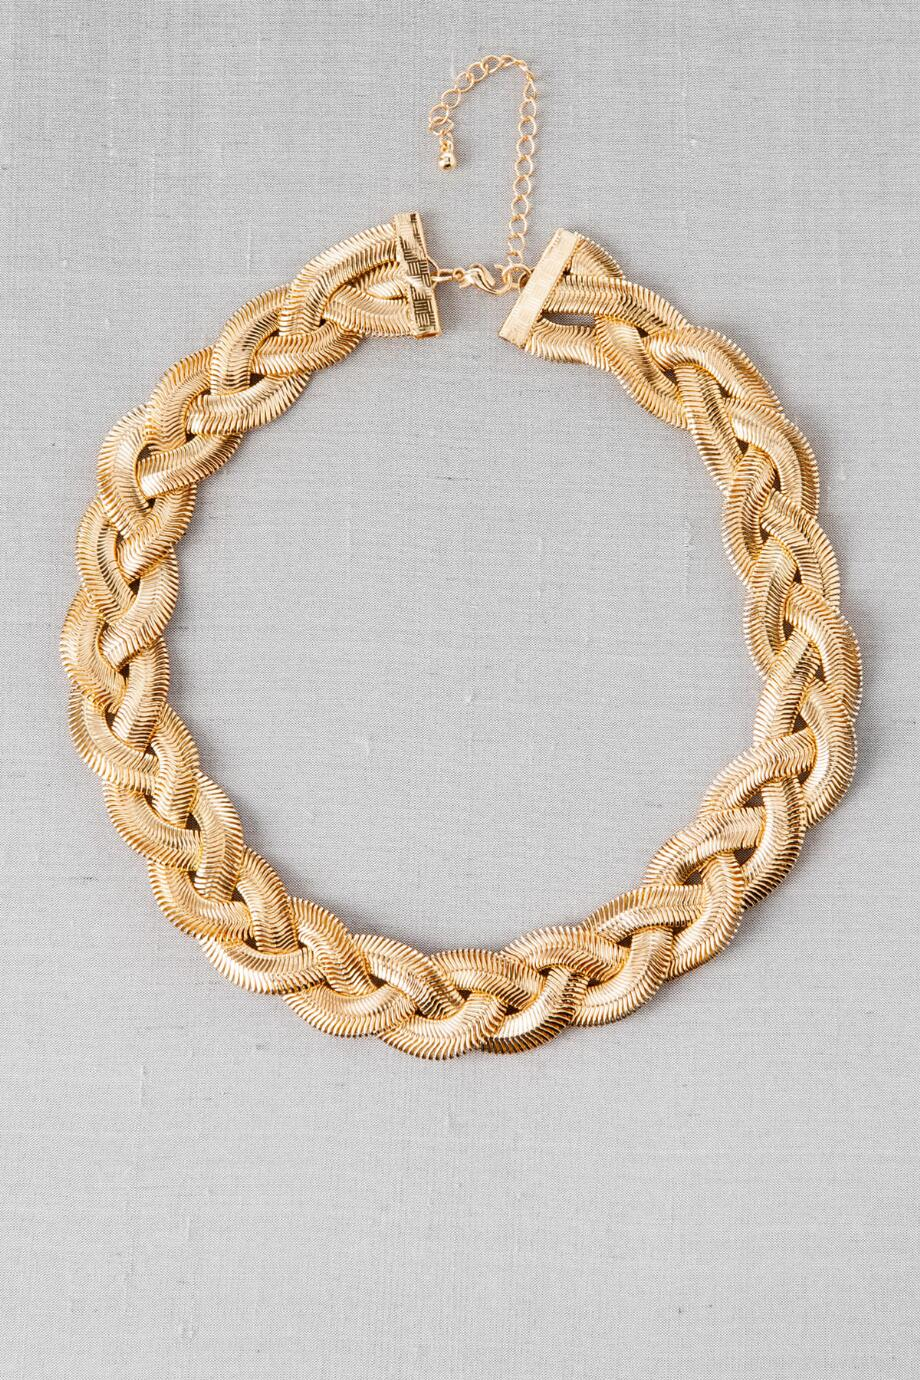 Topanga Braided Necklace